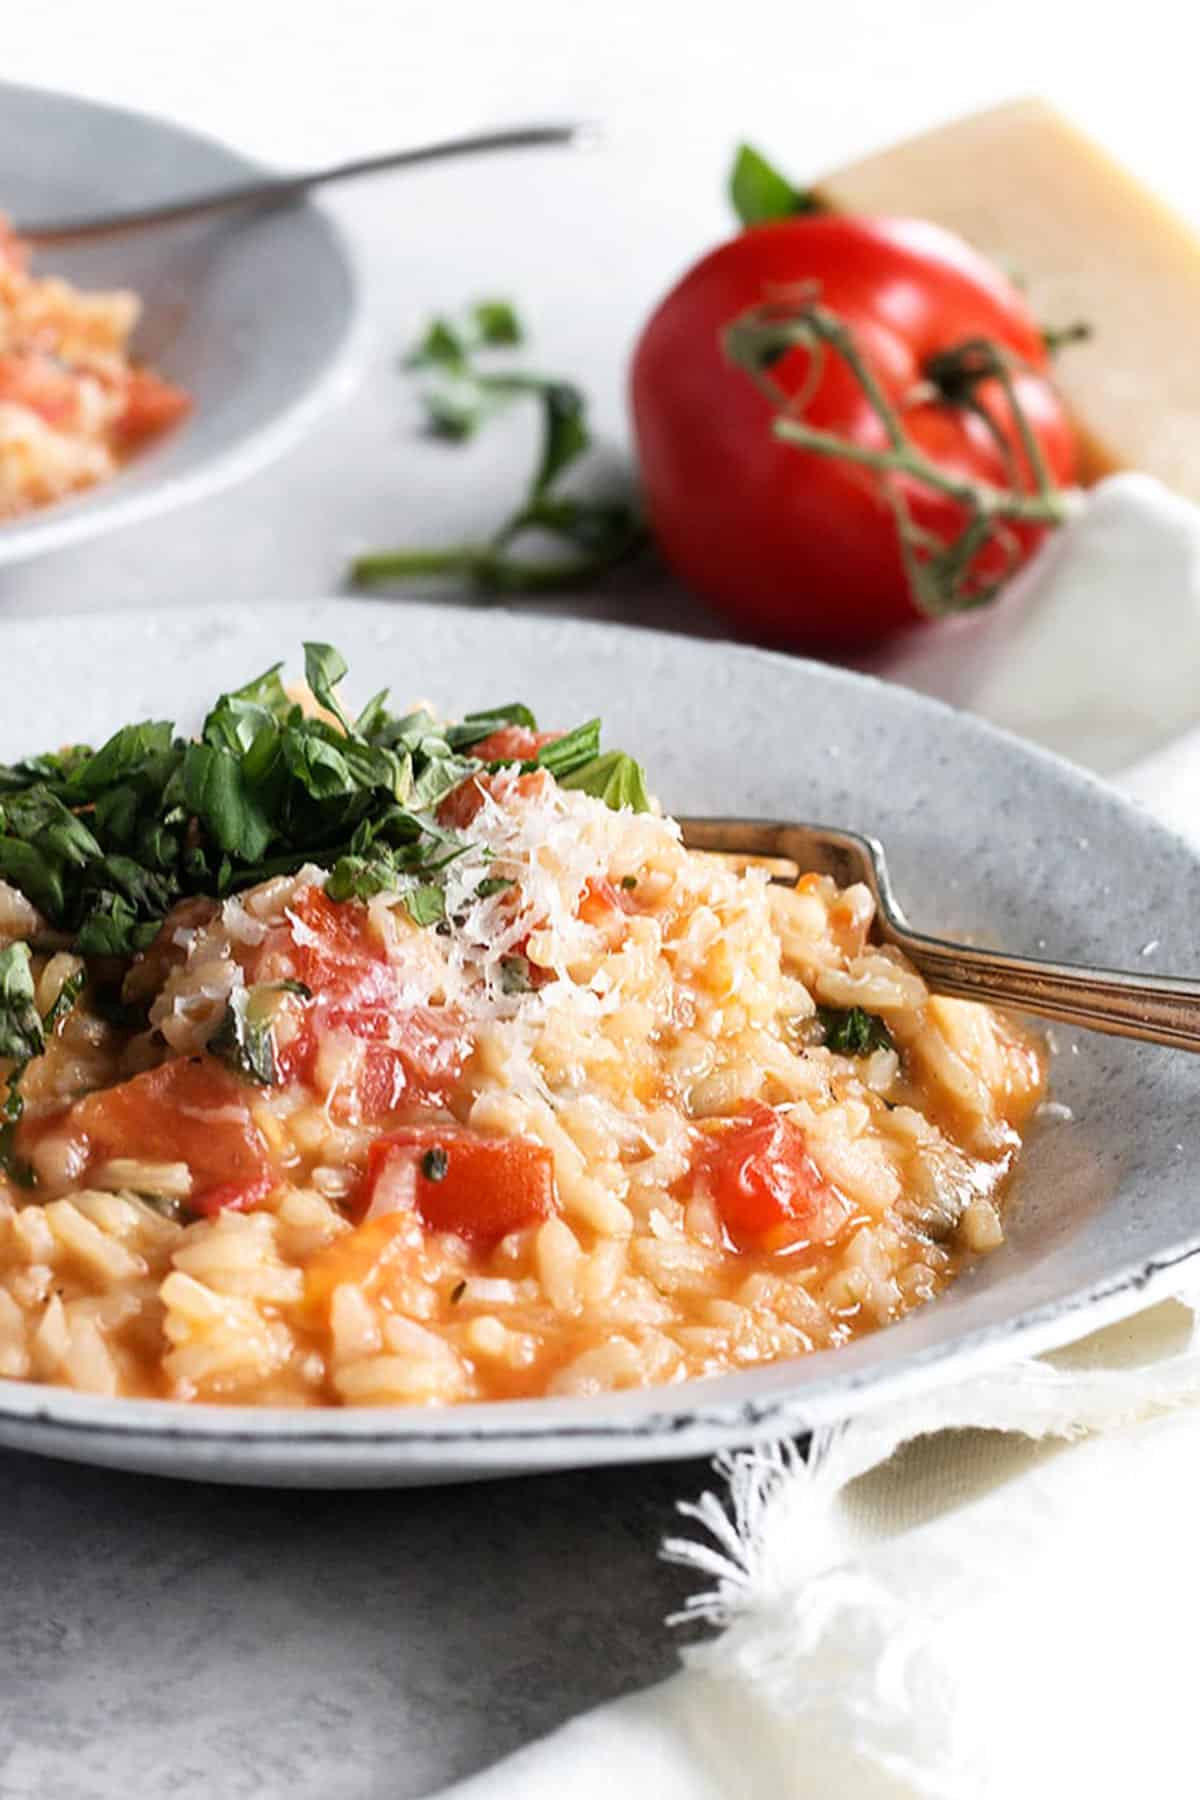 tomato risotto in bowl with whole tomatoes behind